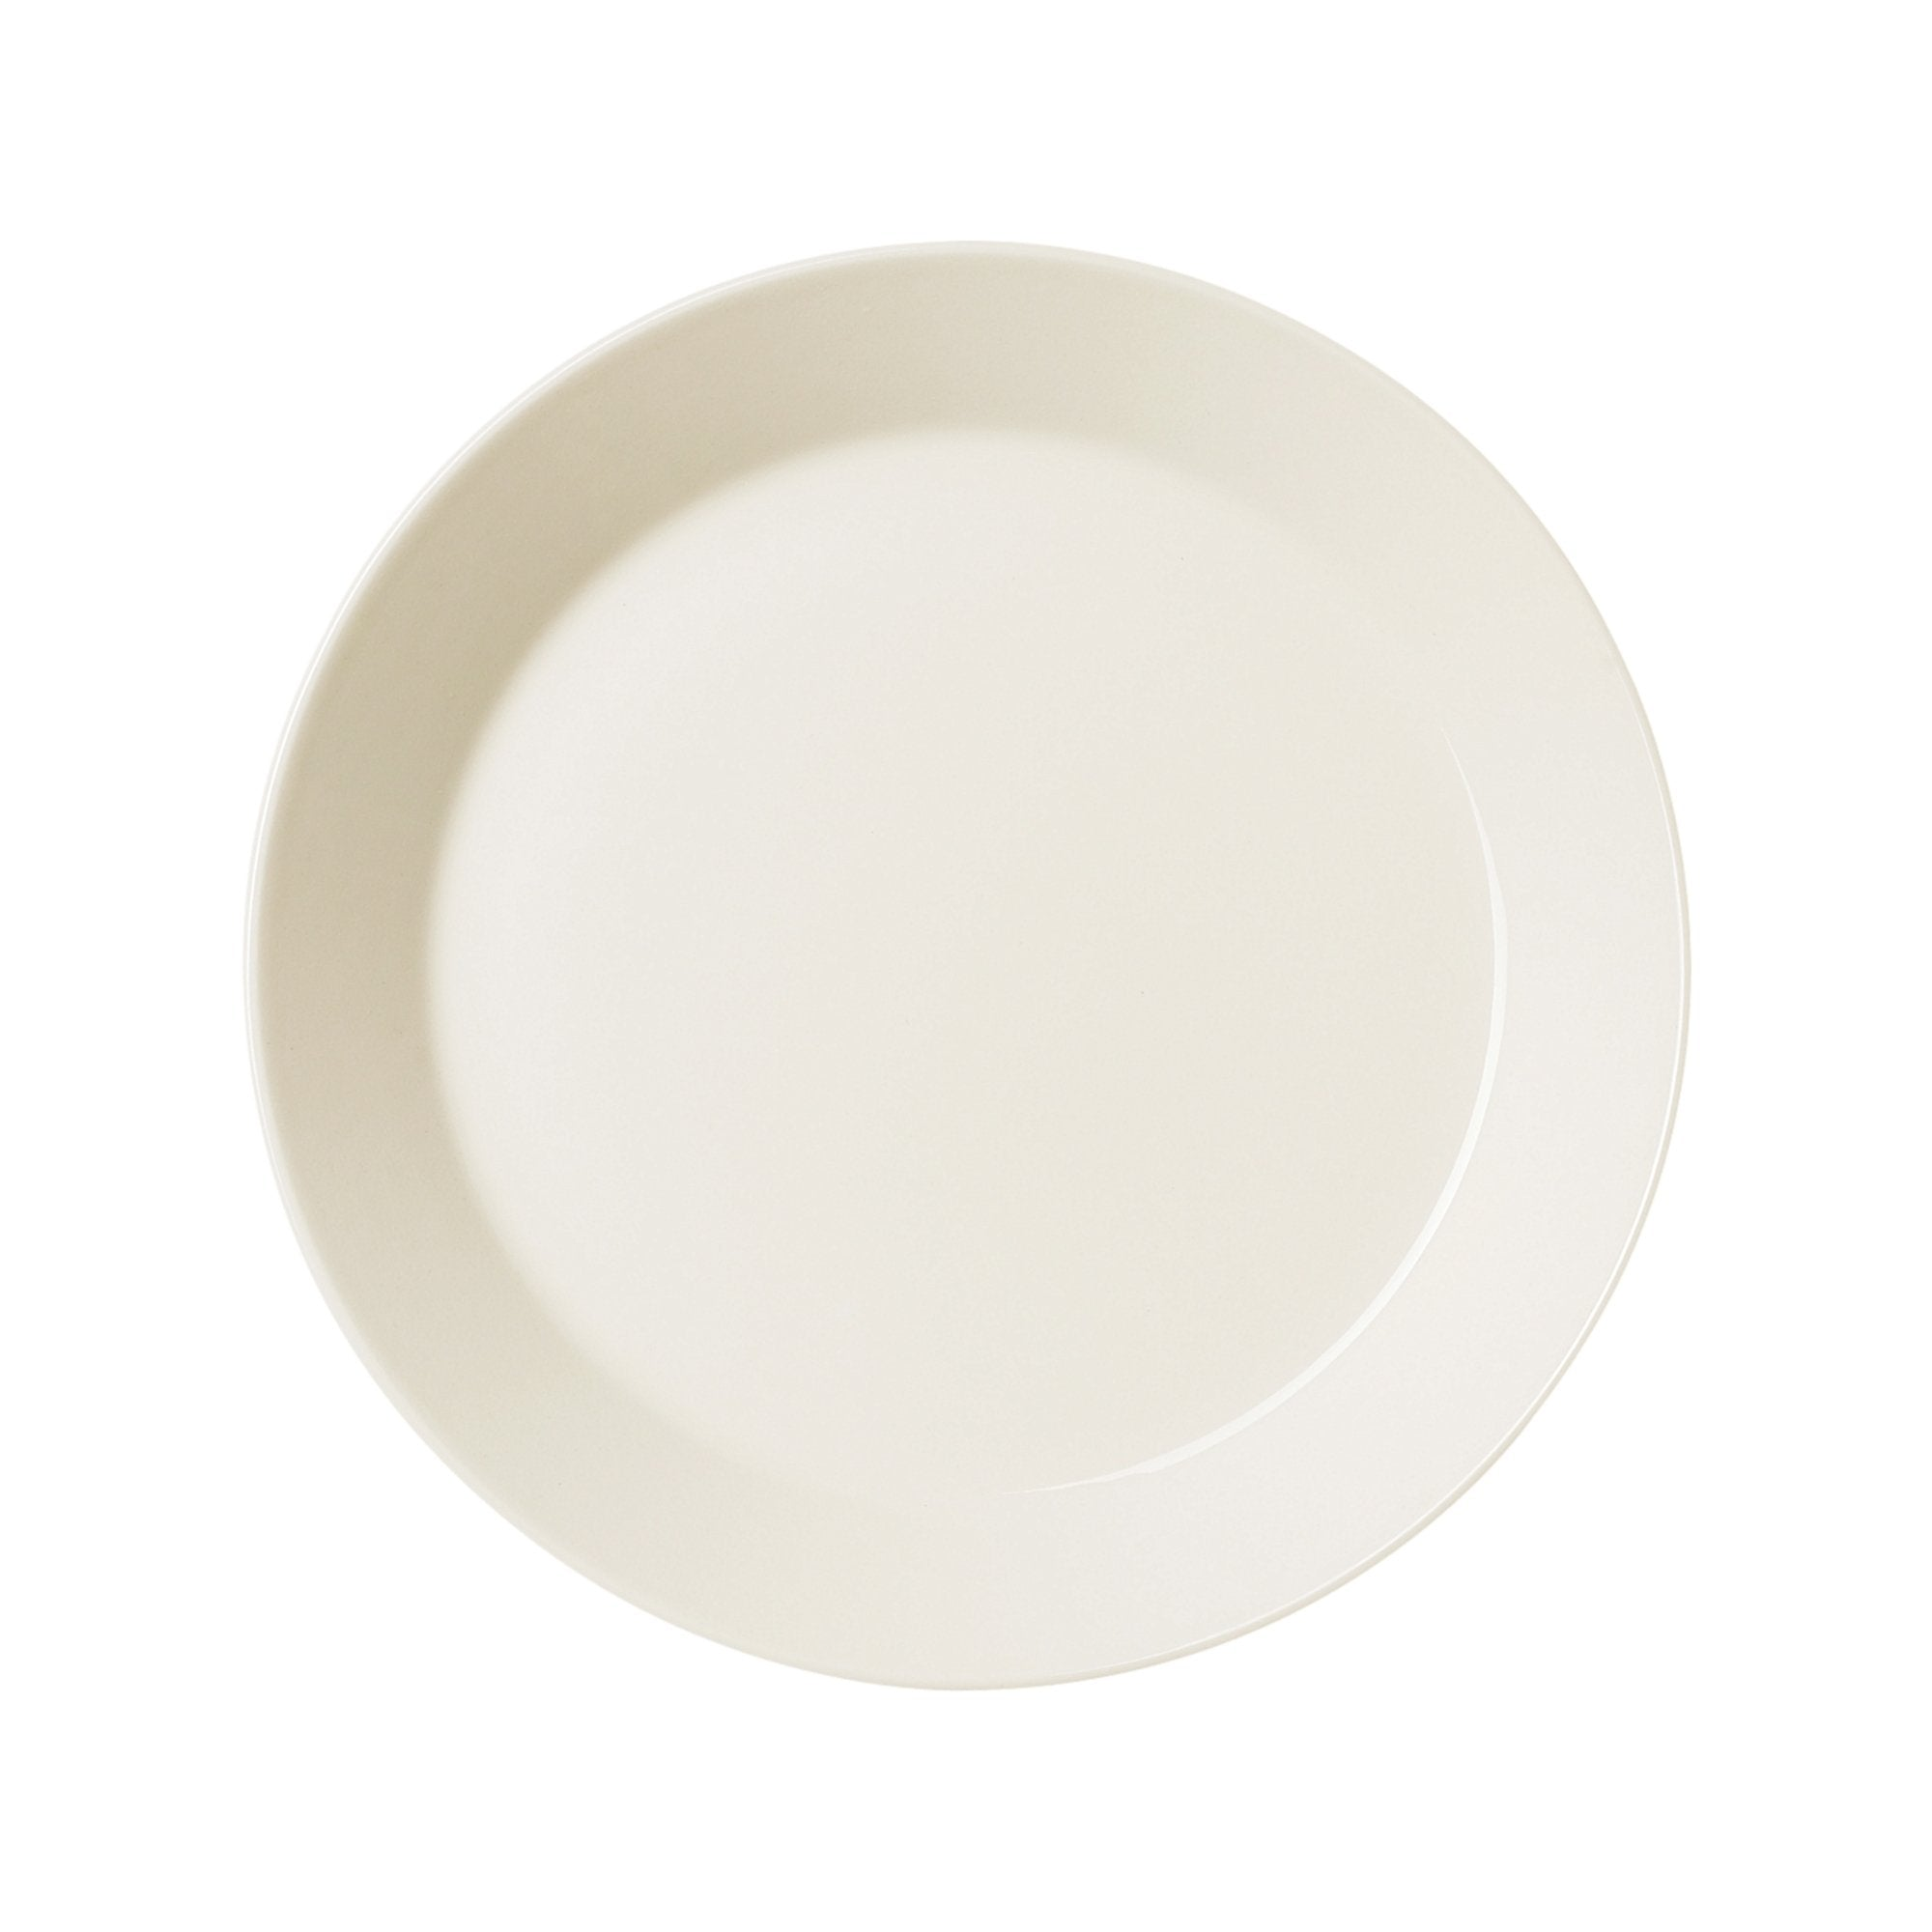 Iittala, Teema Salad Plate, assorted colors, - Placewares